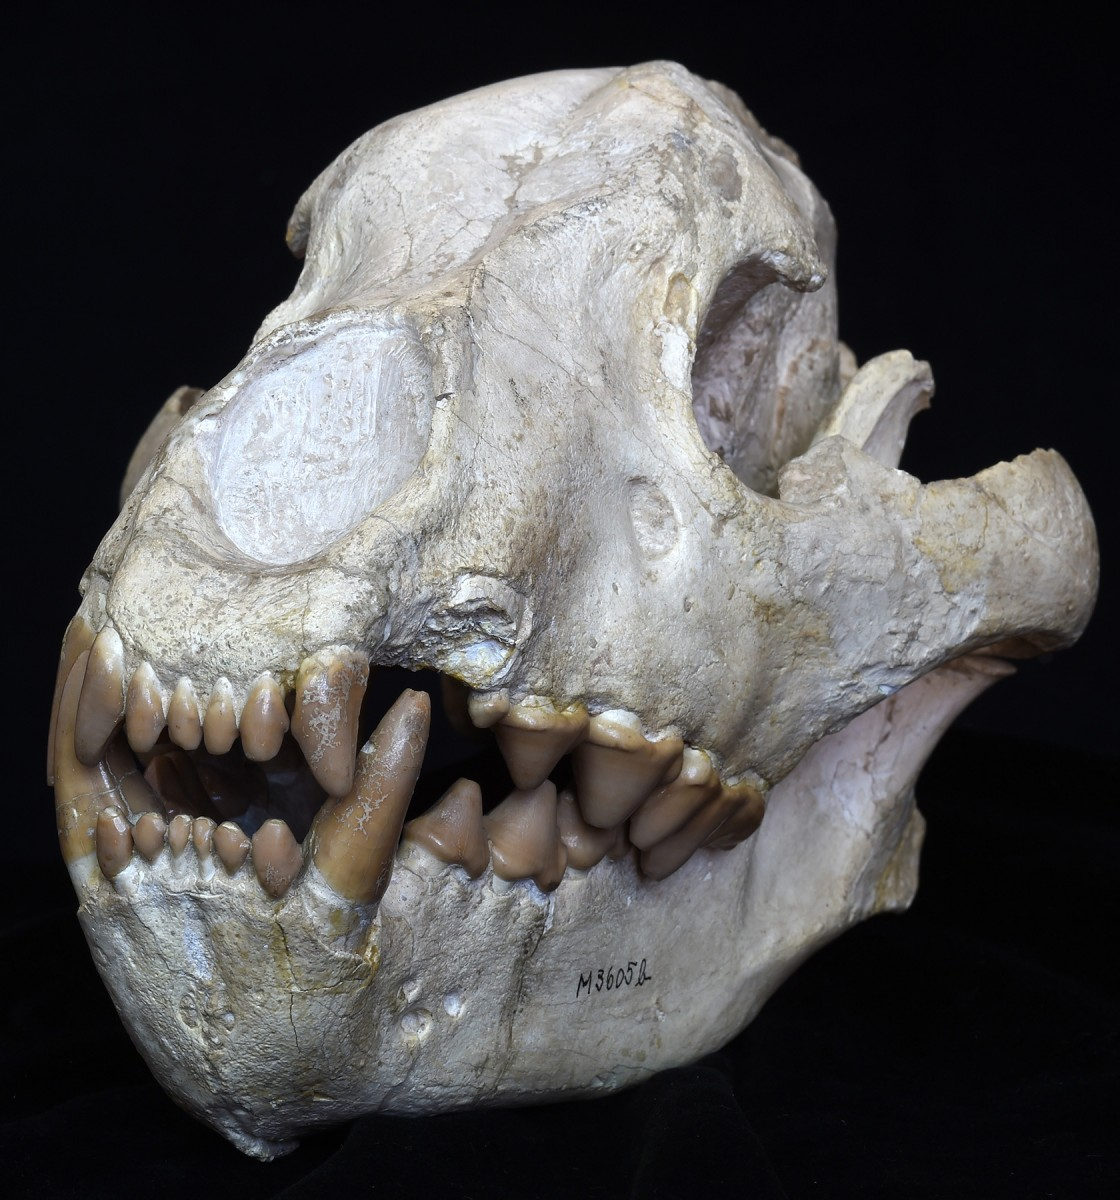 Skull of an extinct hyena, Hyaena eximia,  from the lower Pliocene found at Samos,  Greece. © Collection of Senckenberg  Research Institute and Natural History  Museum Frankfurt , Germany  (collection number SMF M 3605 a-b),  photo: Sven Tränkner